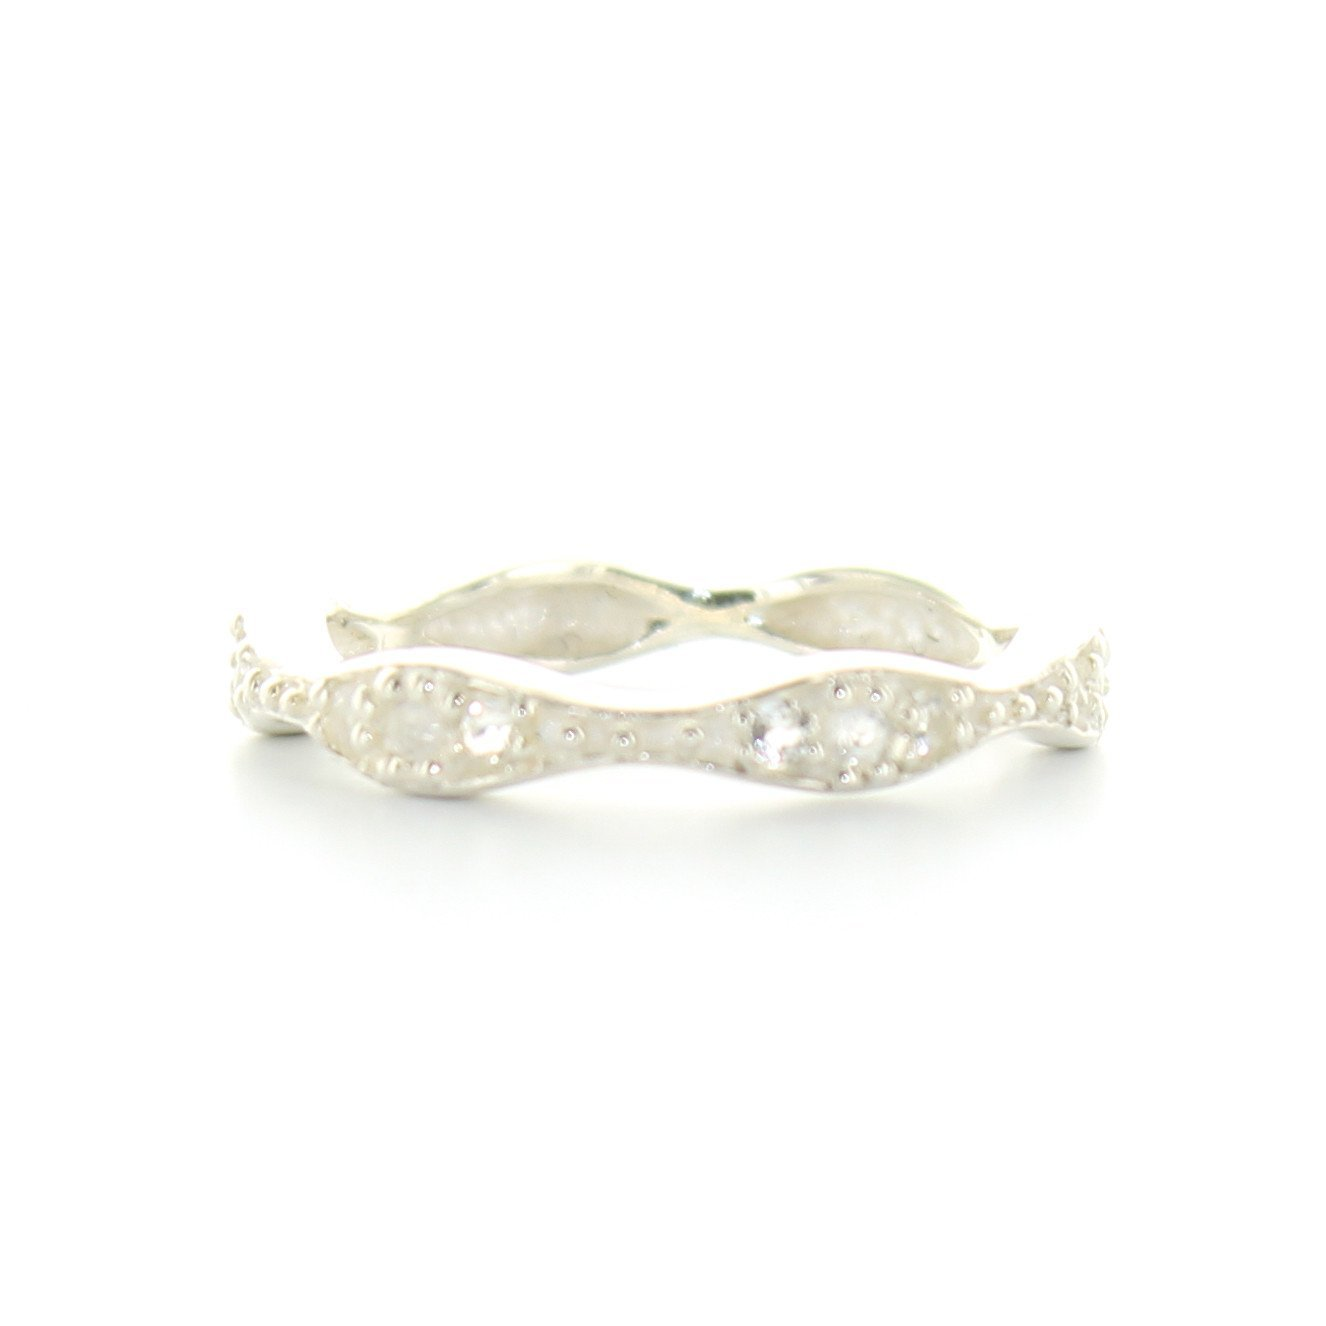 COMPASSION BAND RING - WHITE TOPAZ & SILVER - SO PRETTY CARA COTTER